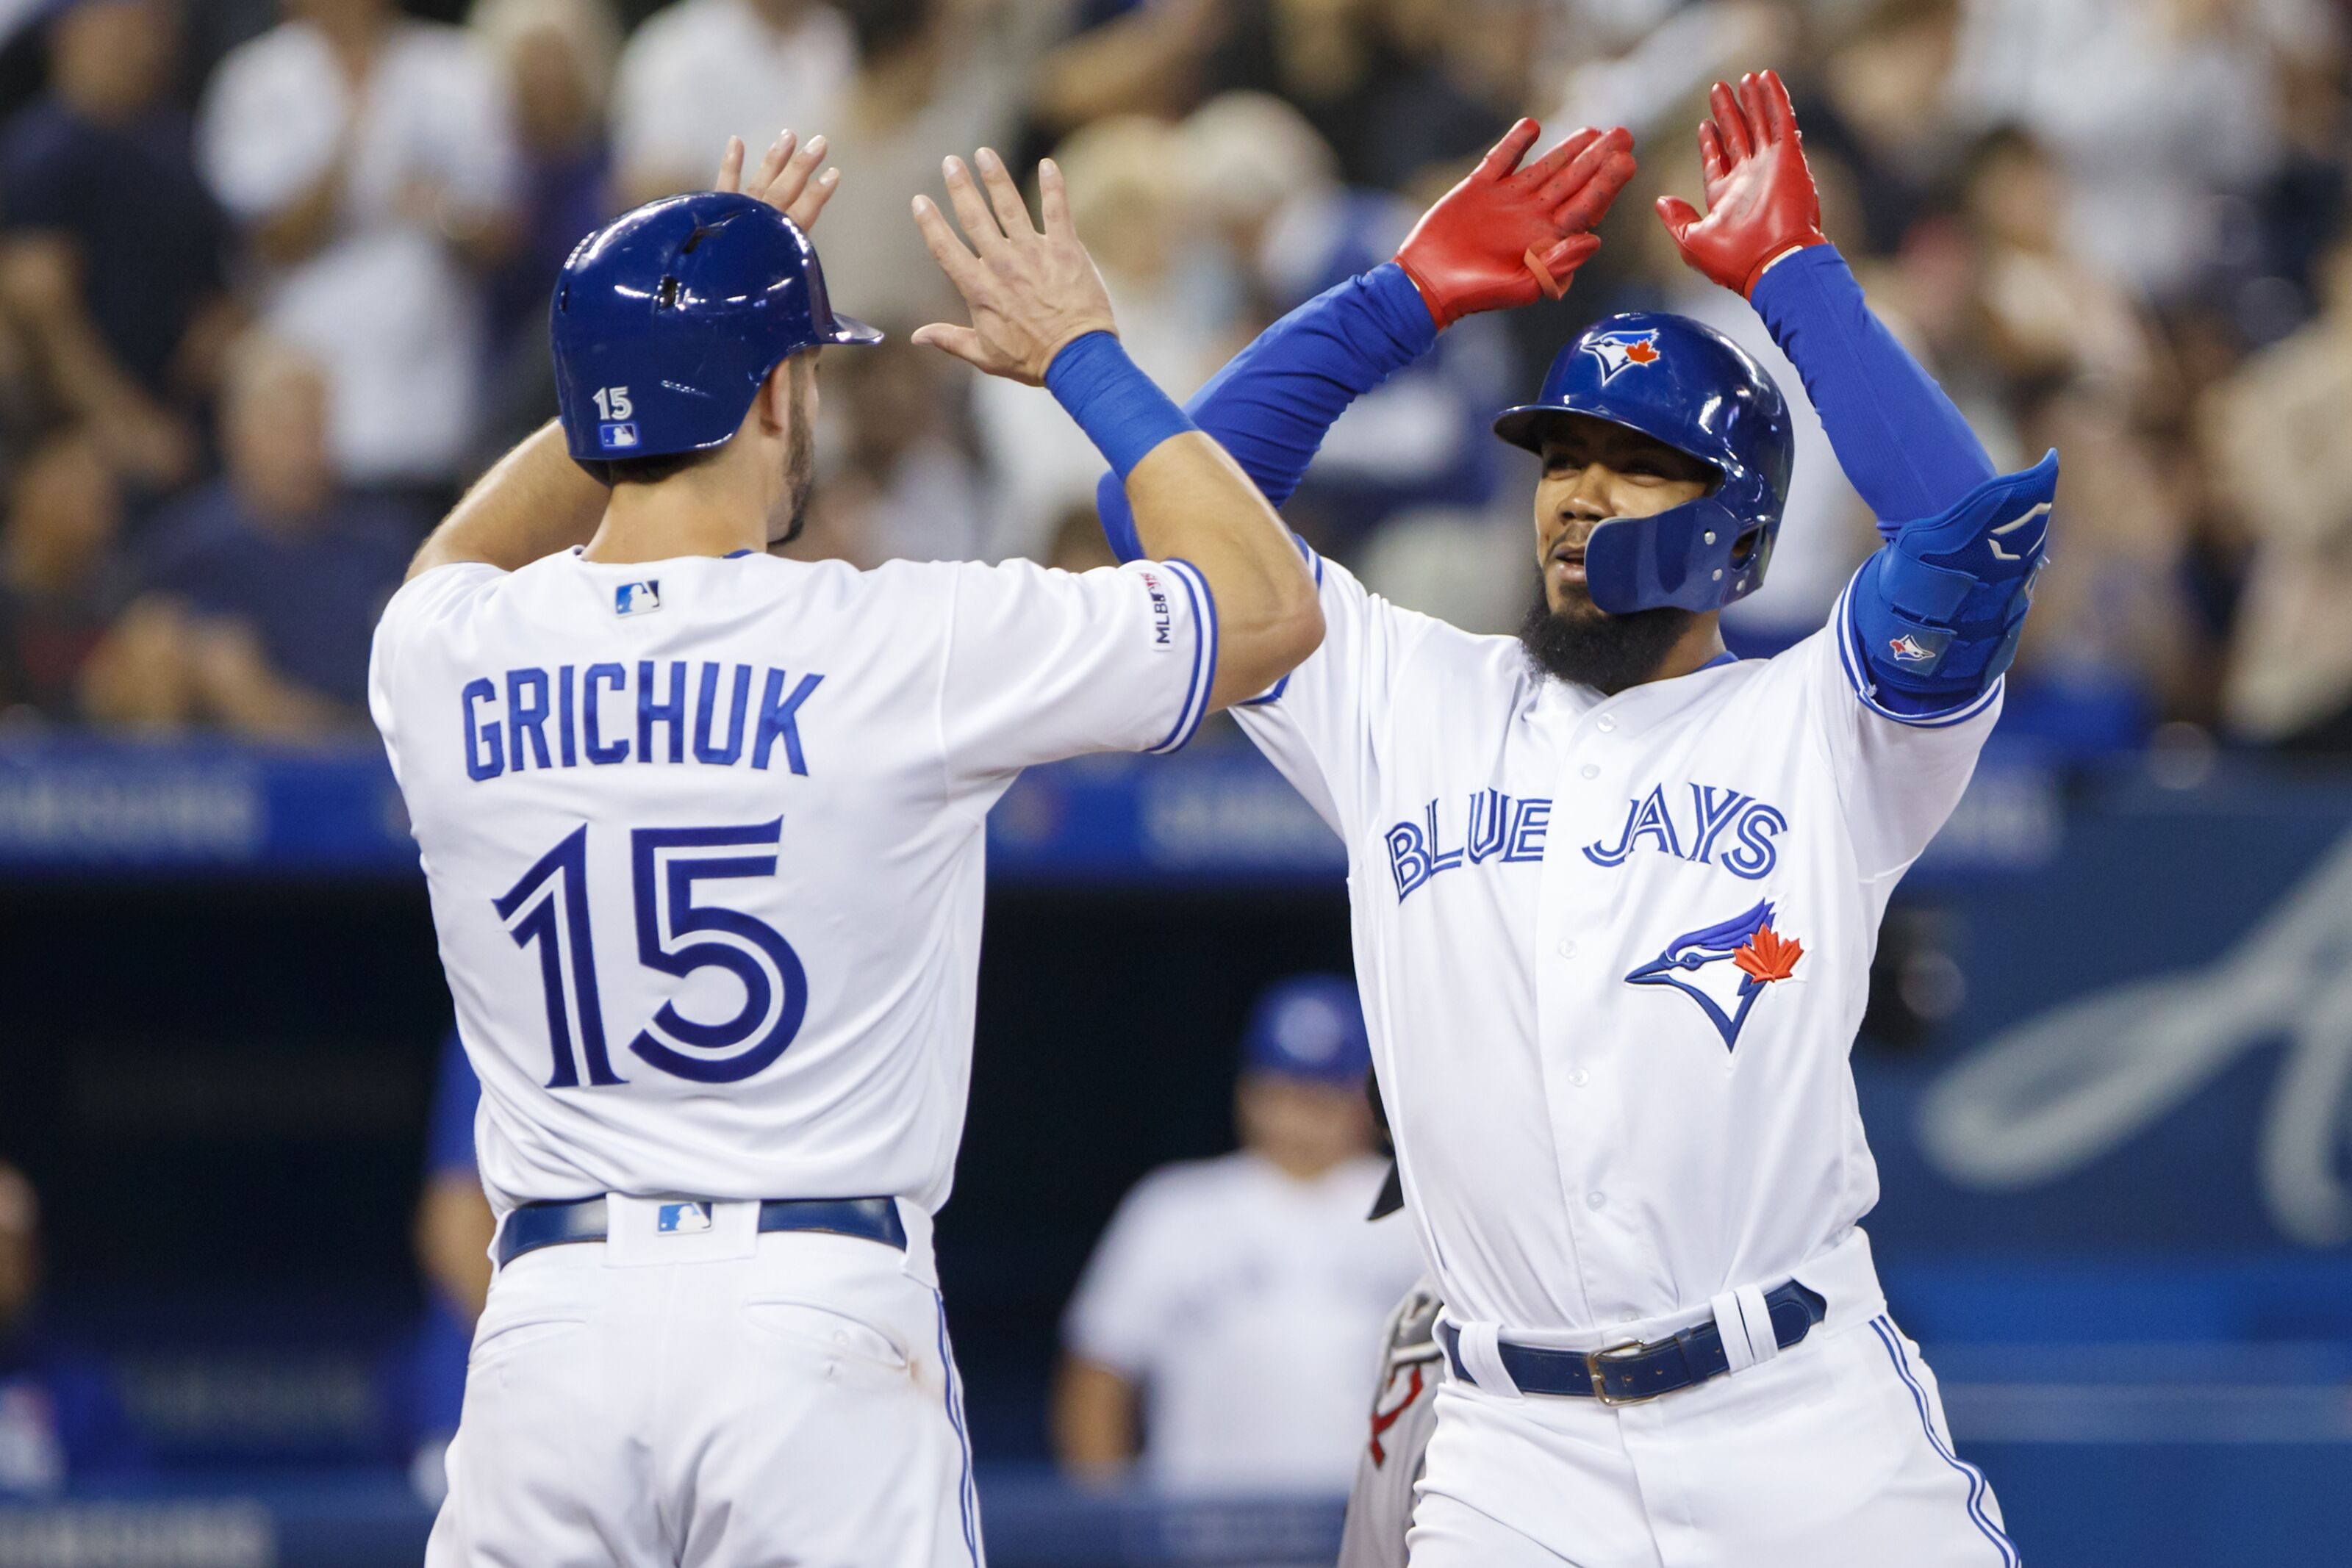 Blue Jays: Randal Grichuk may have to sit down in September - Jays Journal